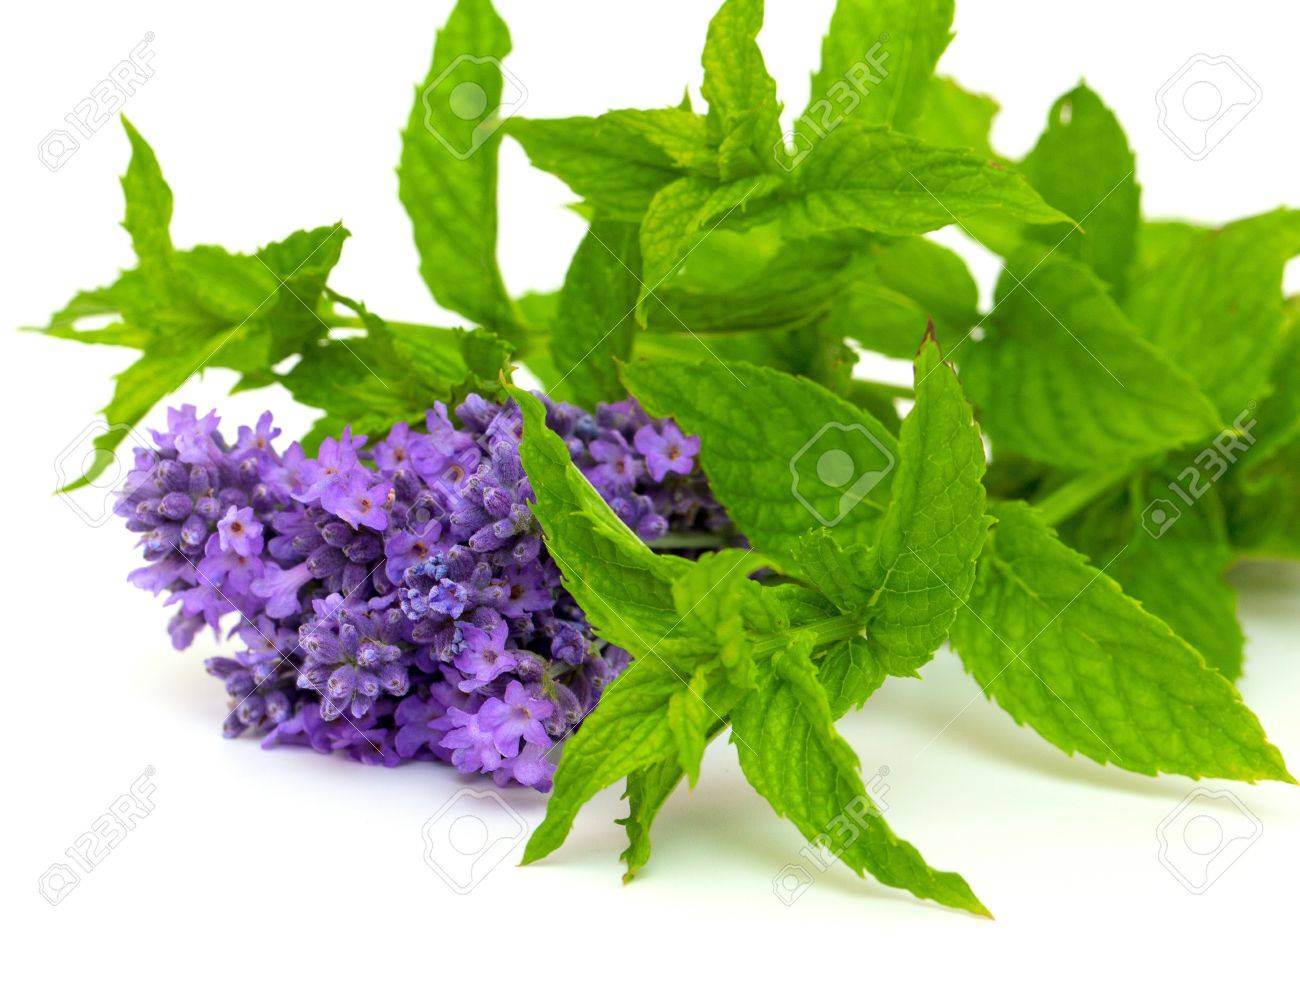 Lavender And Peppermint Isolated On White Background Stock Photo, Picture  And Royalty Free Image. Image 14766457.